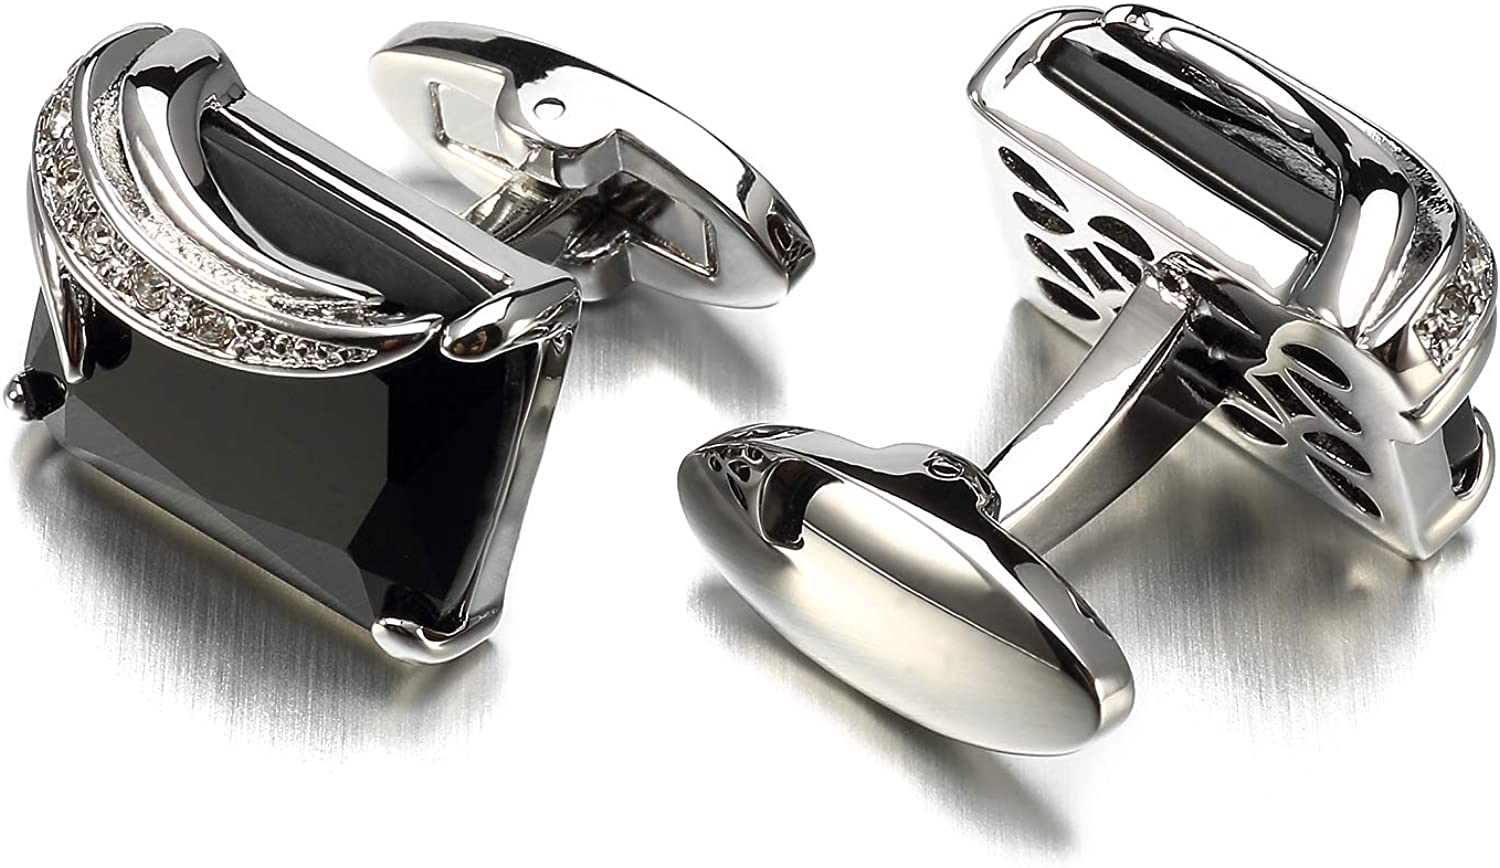 LEPTON Crystal Cufflinks for Men and Father, Luxurious Cufflinks with Delicate Gift Box, Perfect for Wedding Party or Significant Occasion